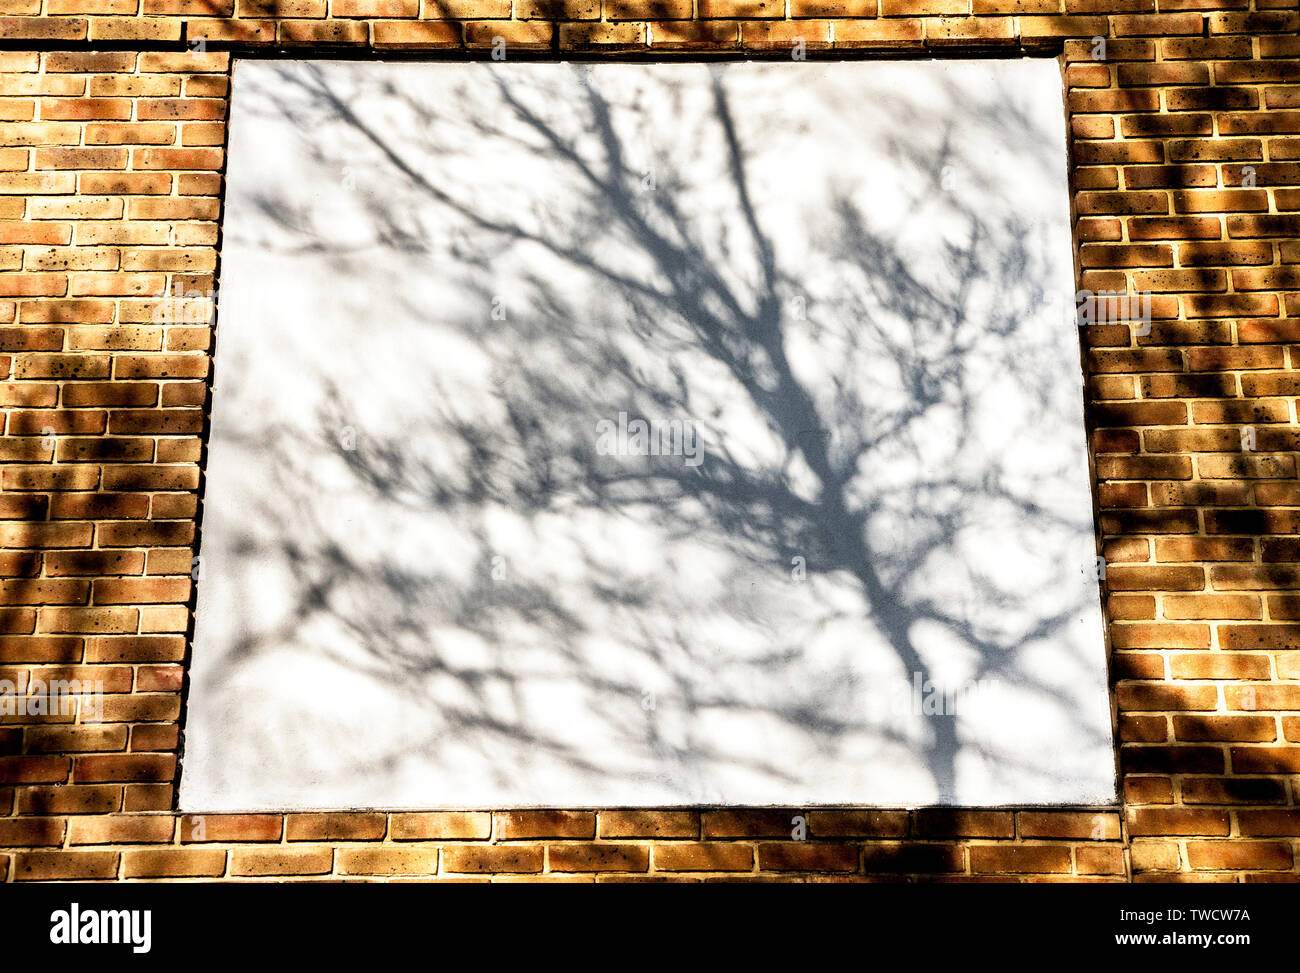 shadows of tree branches and leaves on urban walls in bright sunlight Stock Photo